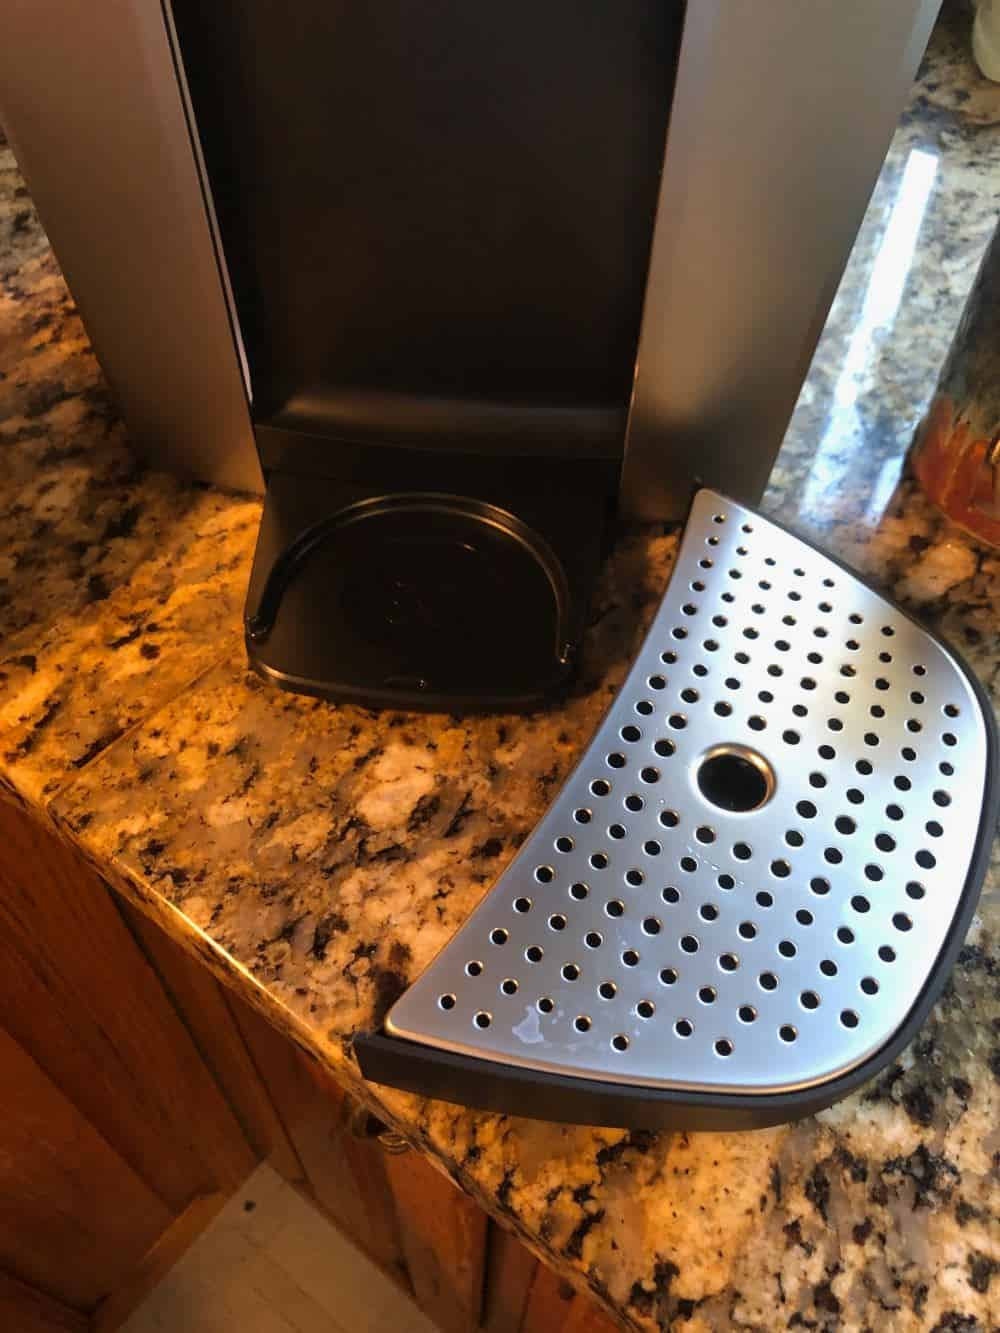 Photo of water spill catch removed from Keurig K-Elite coffee machine